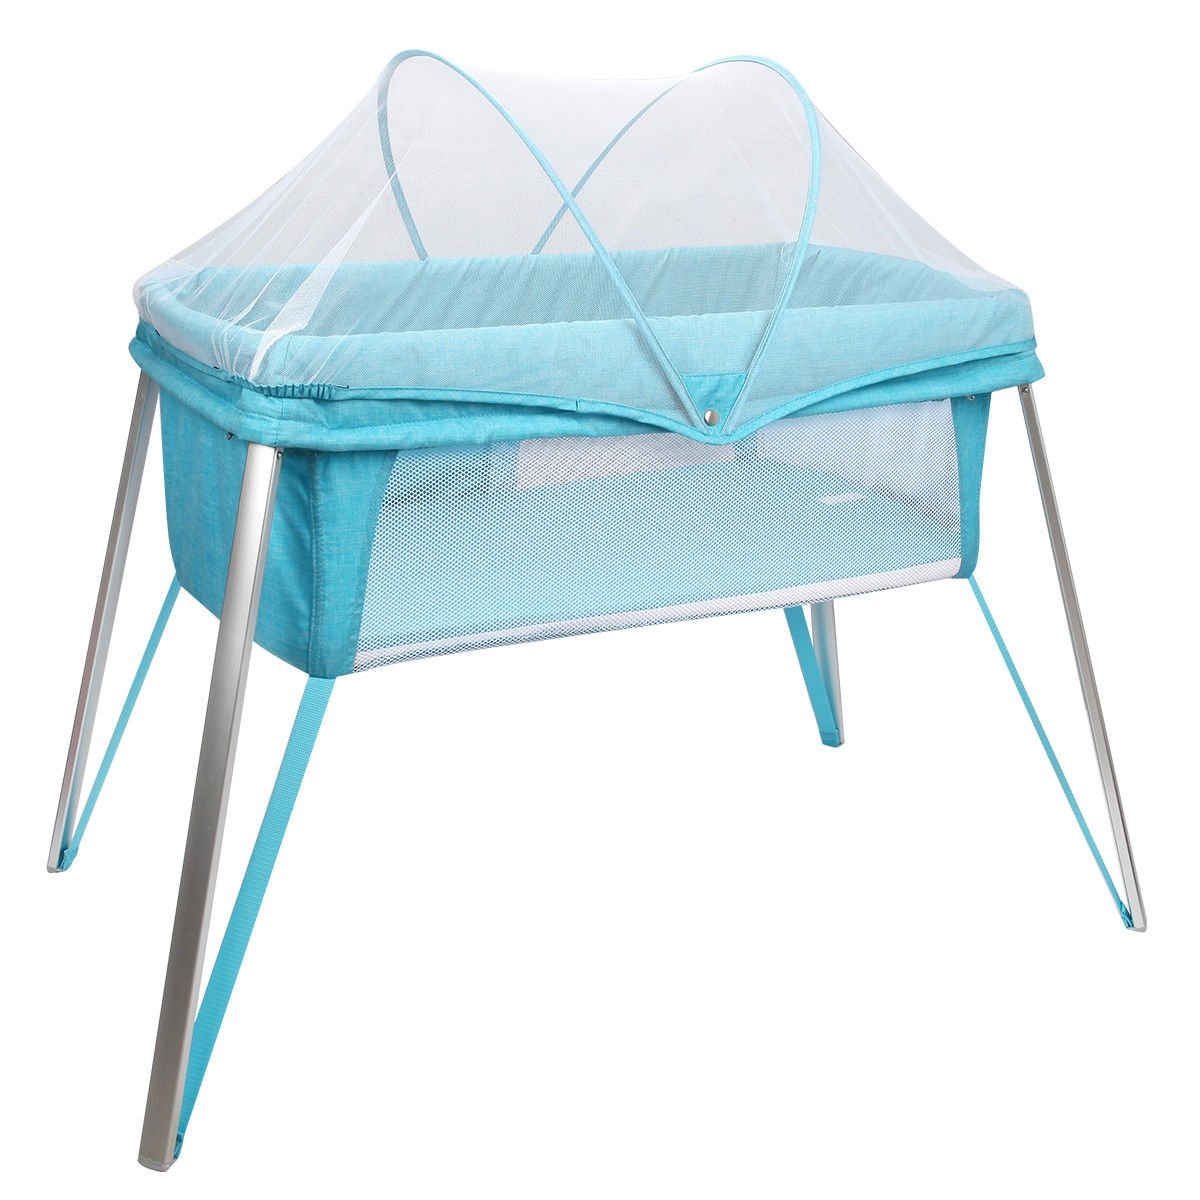 Costzon Baby Bassinet, Alumnium Foldable Baby Crib with Mosquito Net/Carry Bag